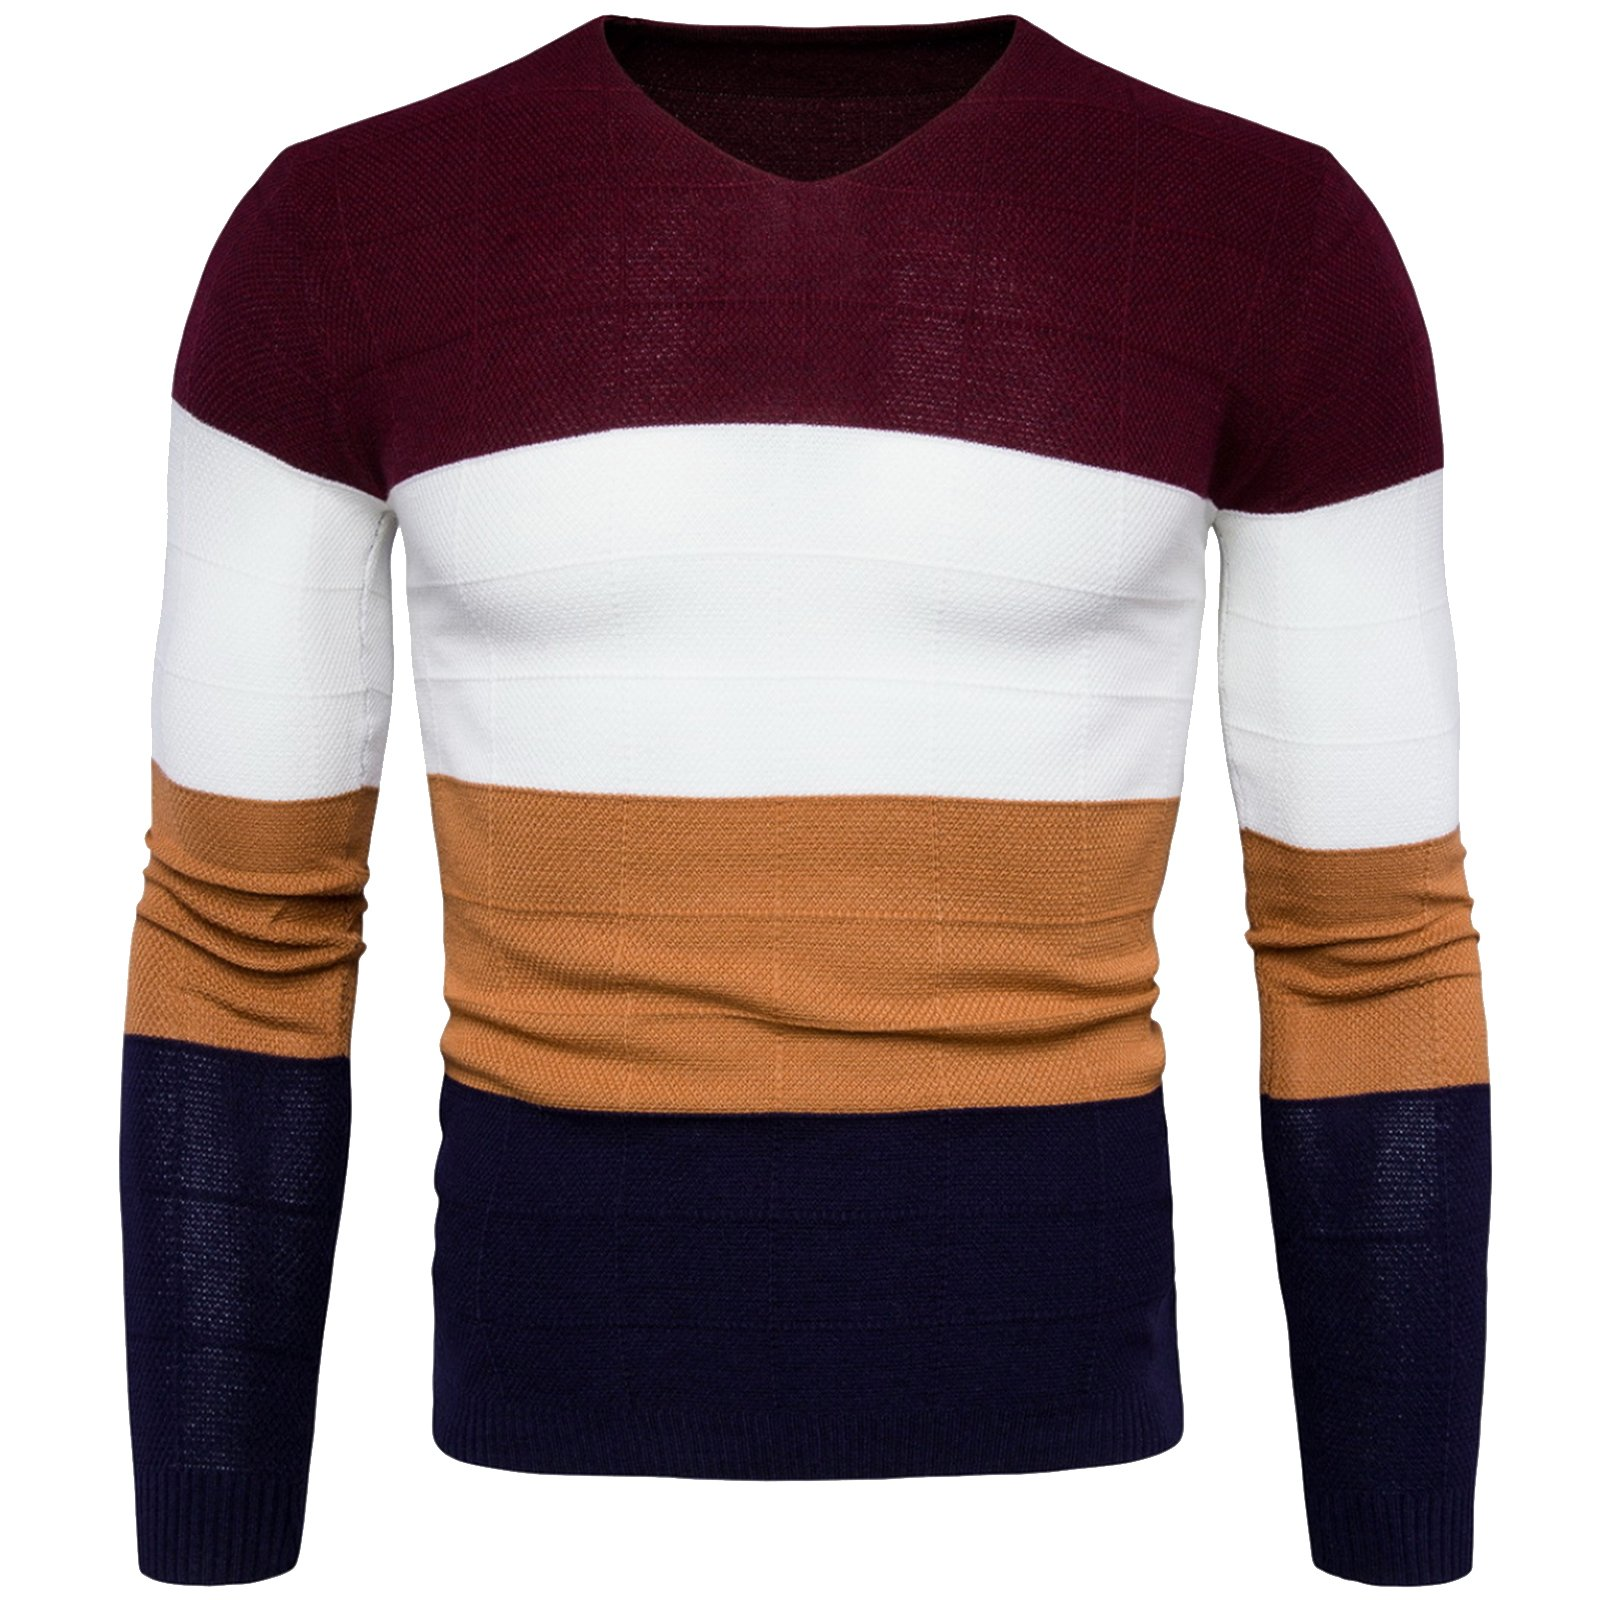 WSLCN Mens Chic Fine Knit V-Neck Coton Jumper Pullover Contrast Color Sweater Red US S (Asian L)